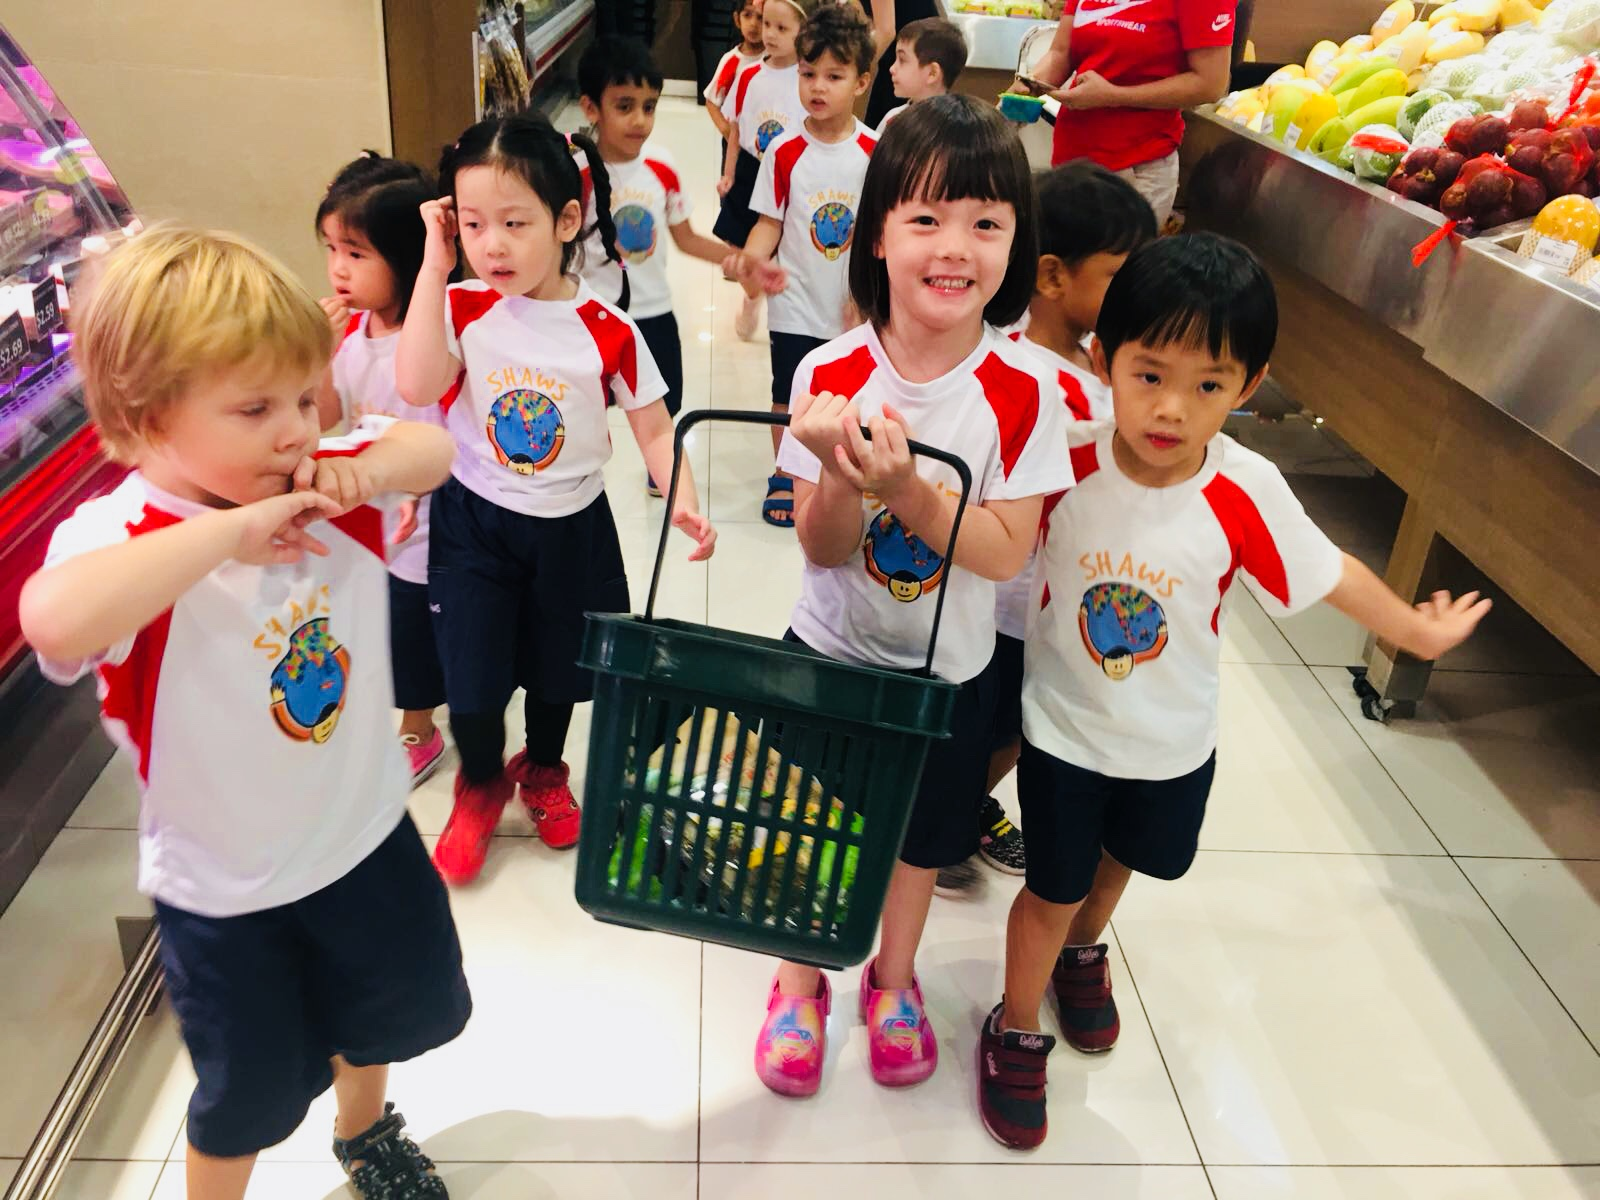 shopping for groceries - supermarket - at shaws preschool